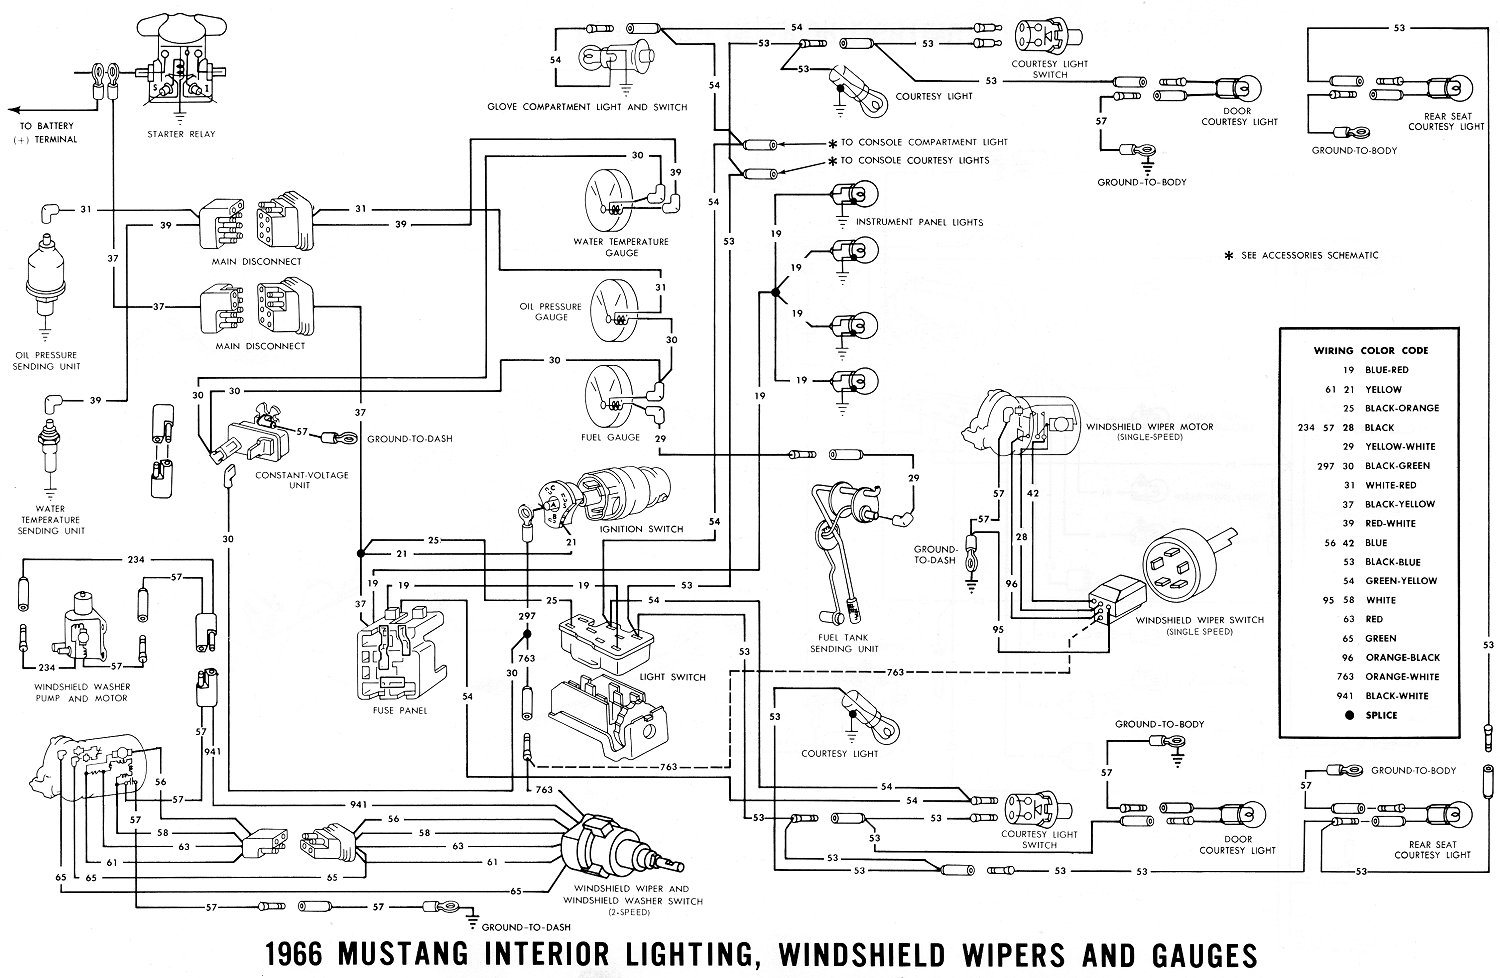 66inter1 vintage mustang wiring diagrams 1965 mustang wiring diagram pdf at couponss.co